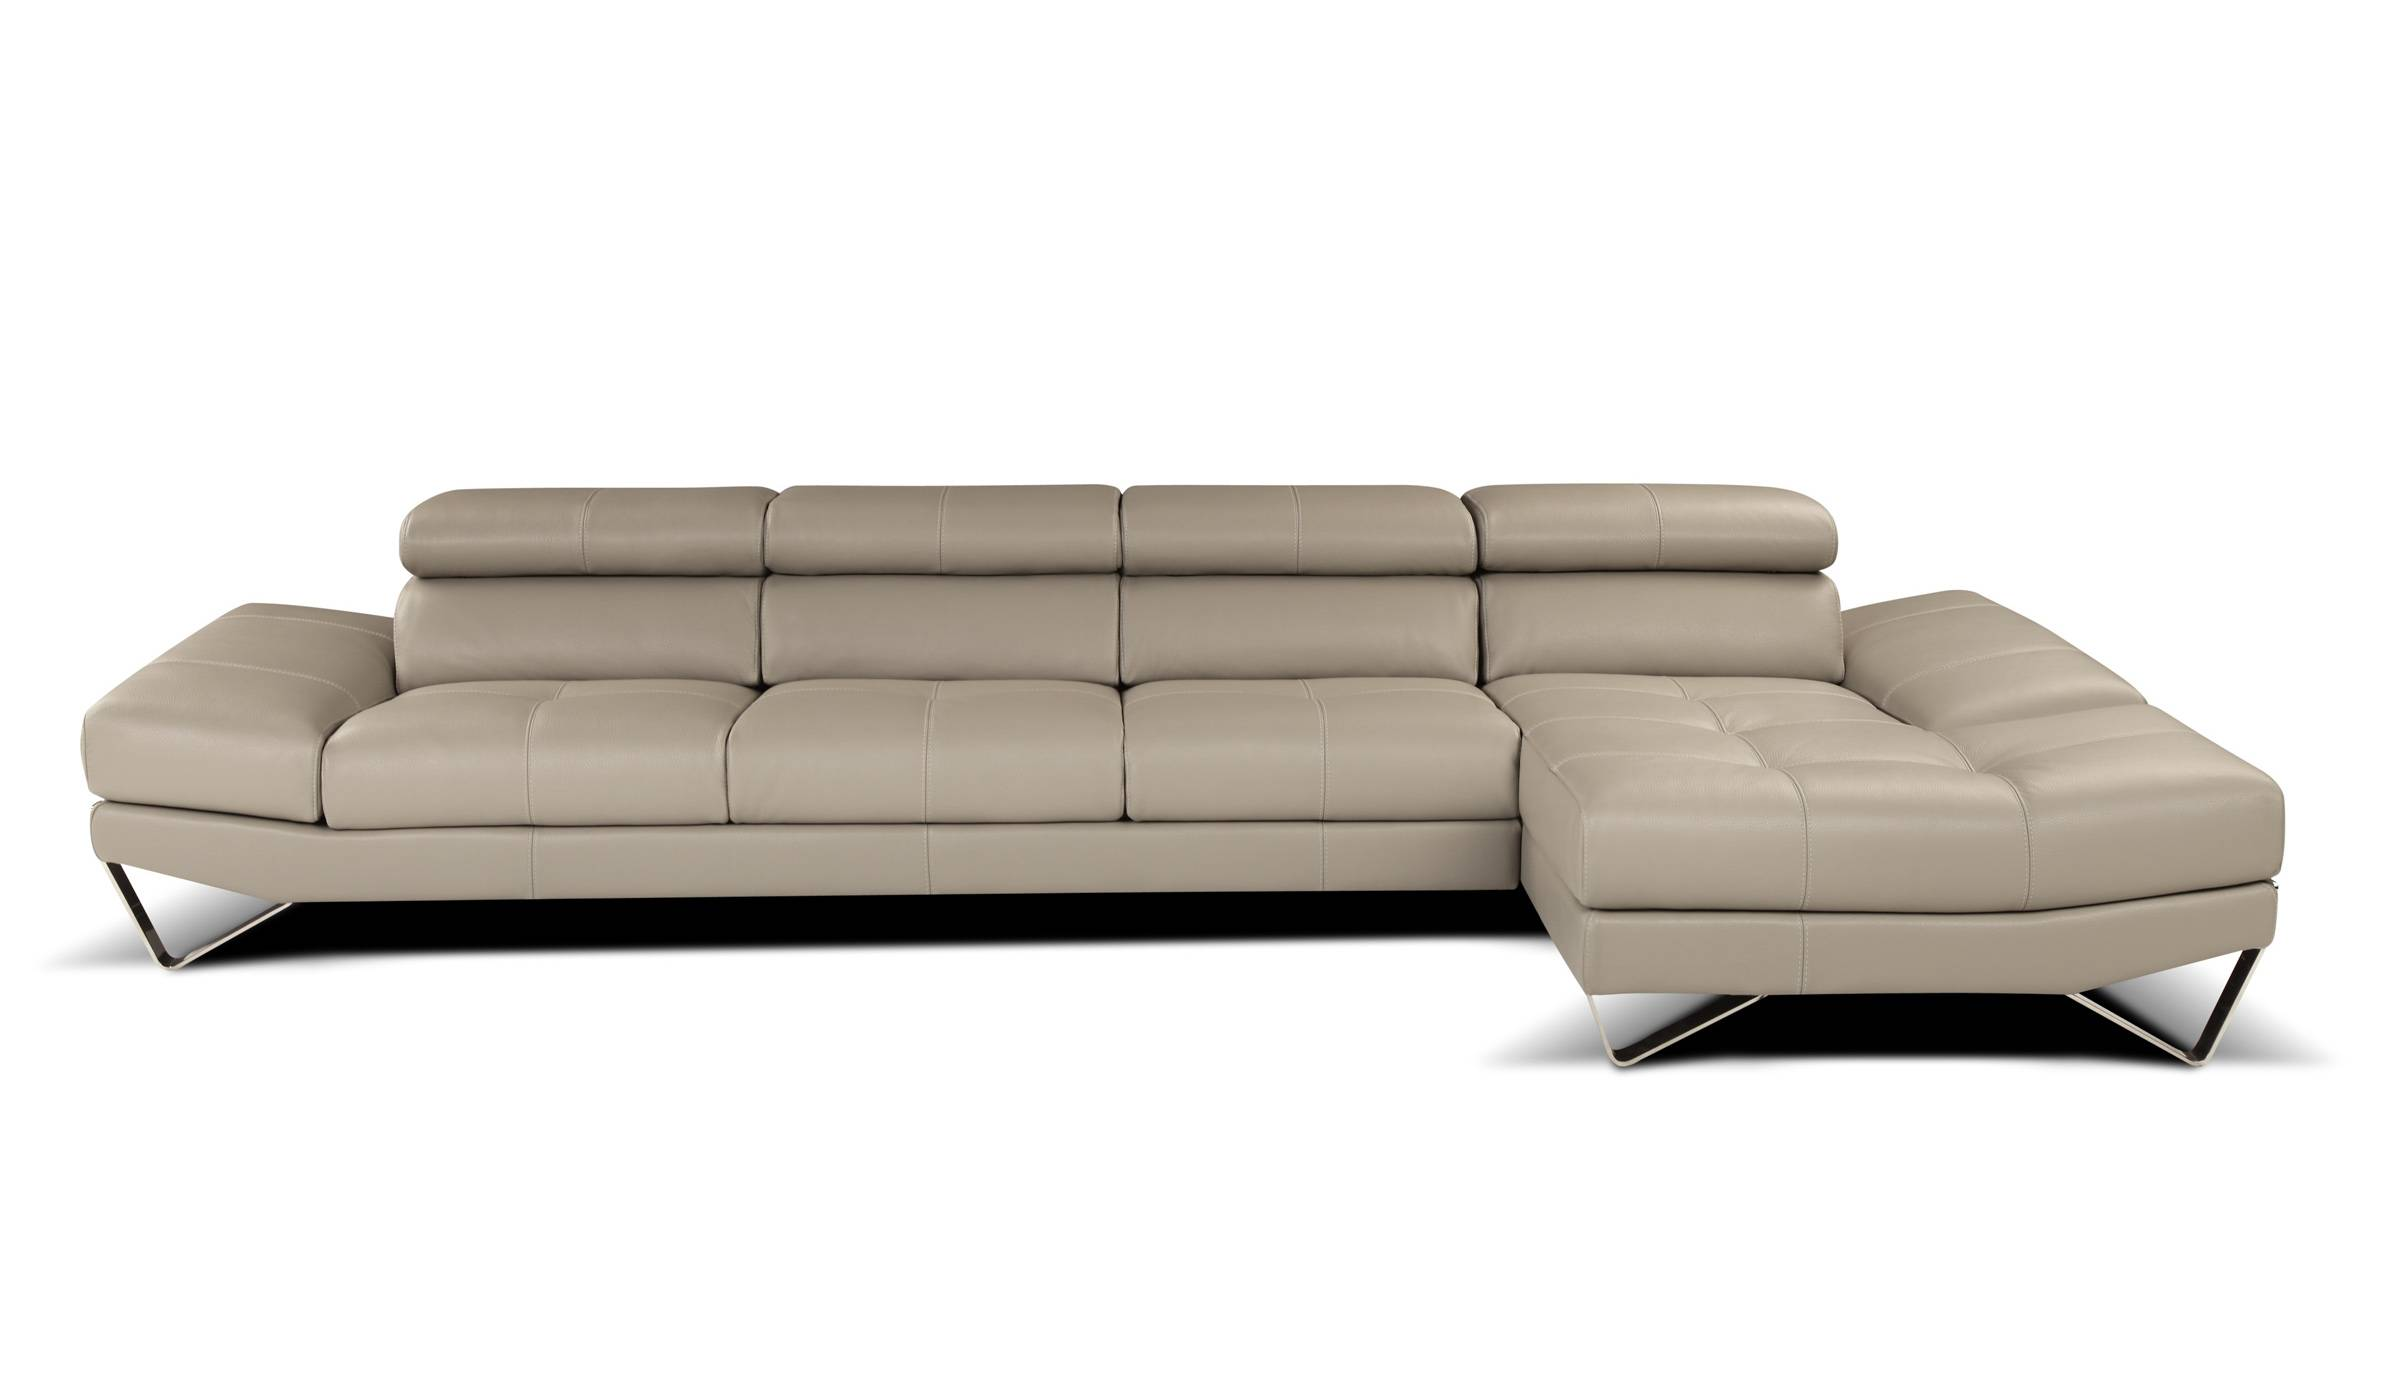 italian brand furniture gerdan co sophisticated all italian leather sectional sofa spokane contemporary sofas italian sectional sofas leather small house interior design